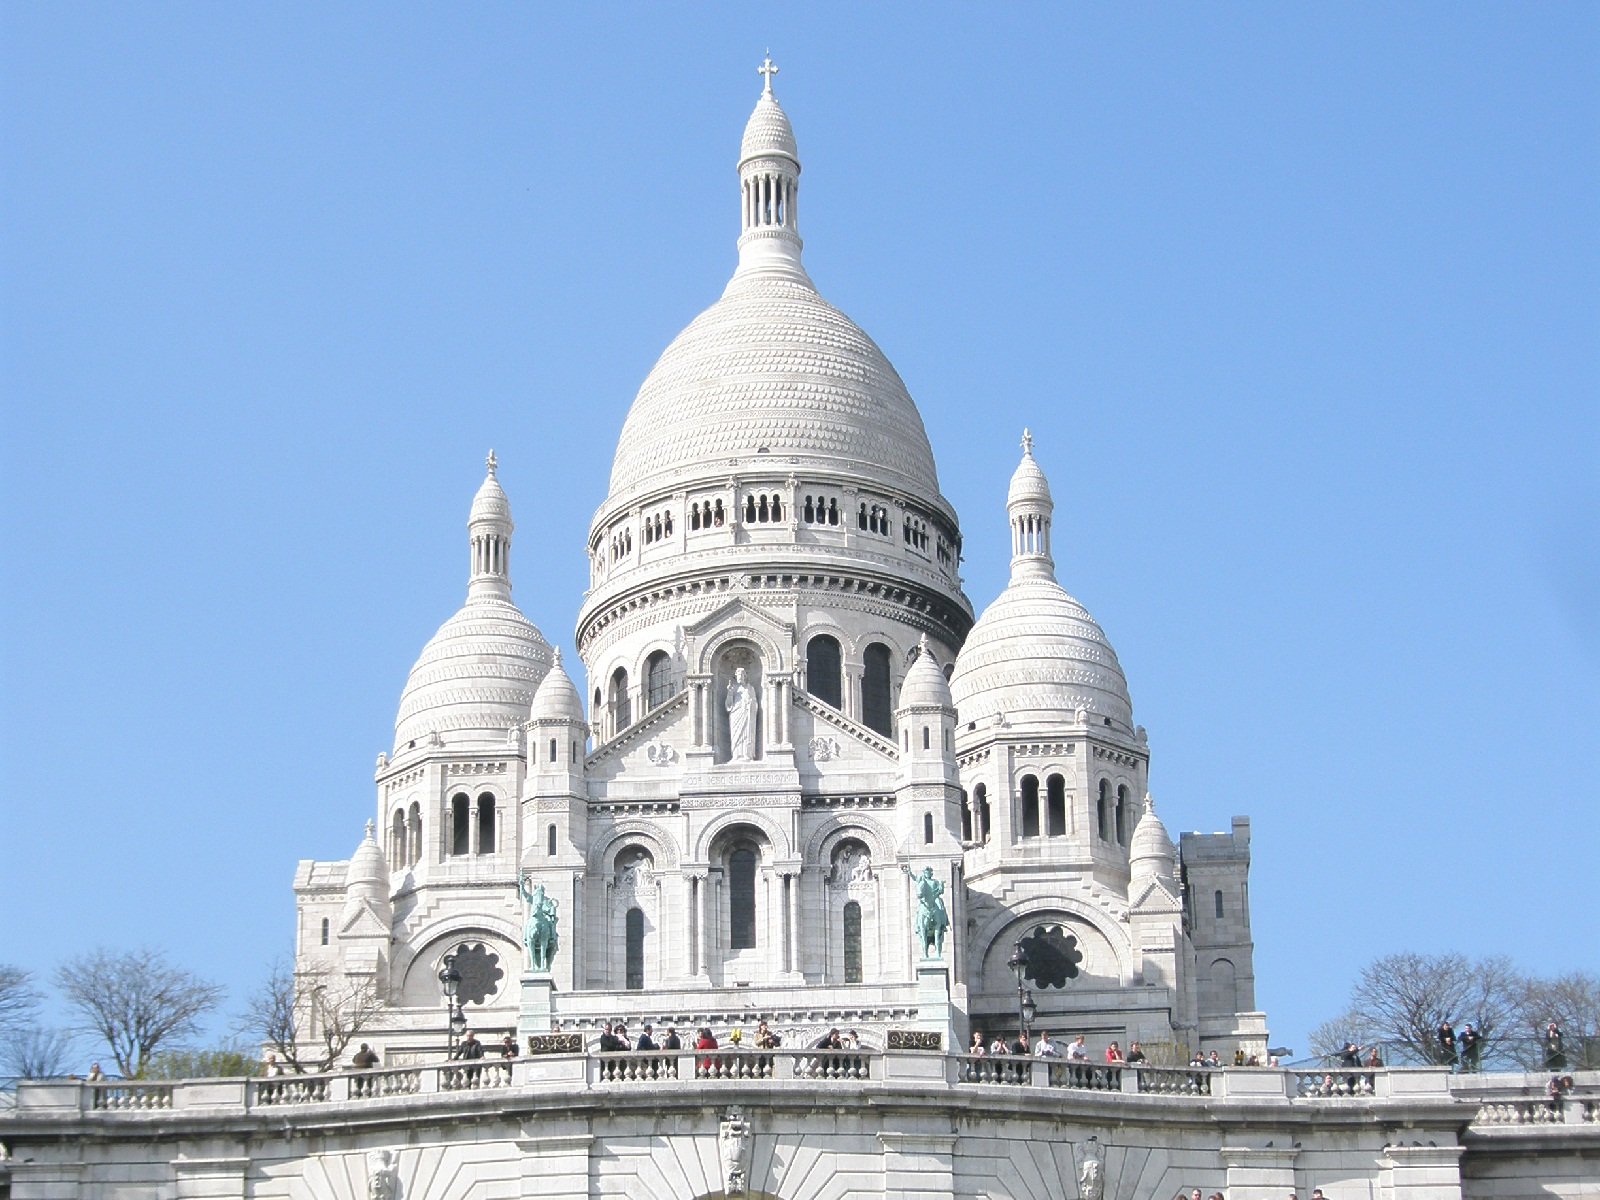 Related keywords suggestions for le sacre coeur history for Architecture a paris